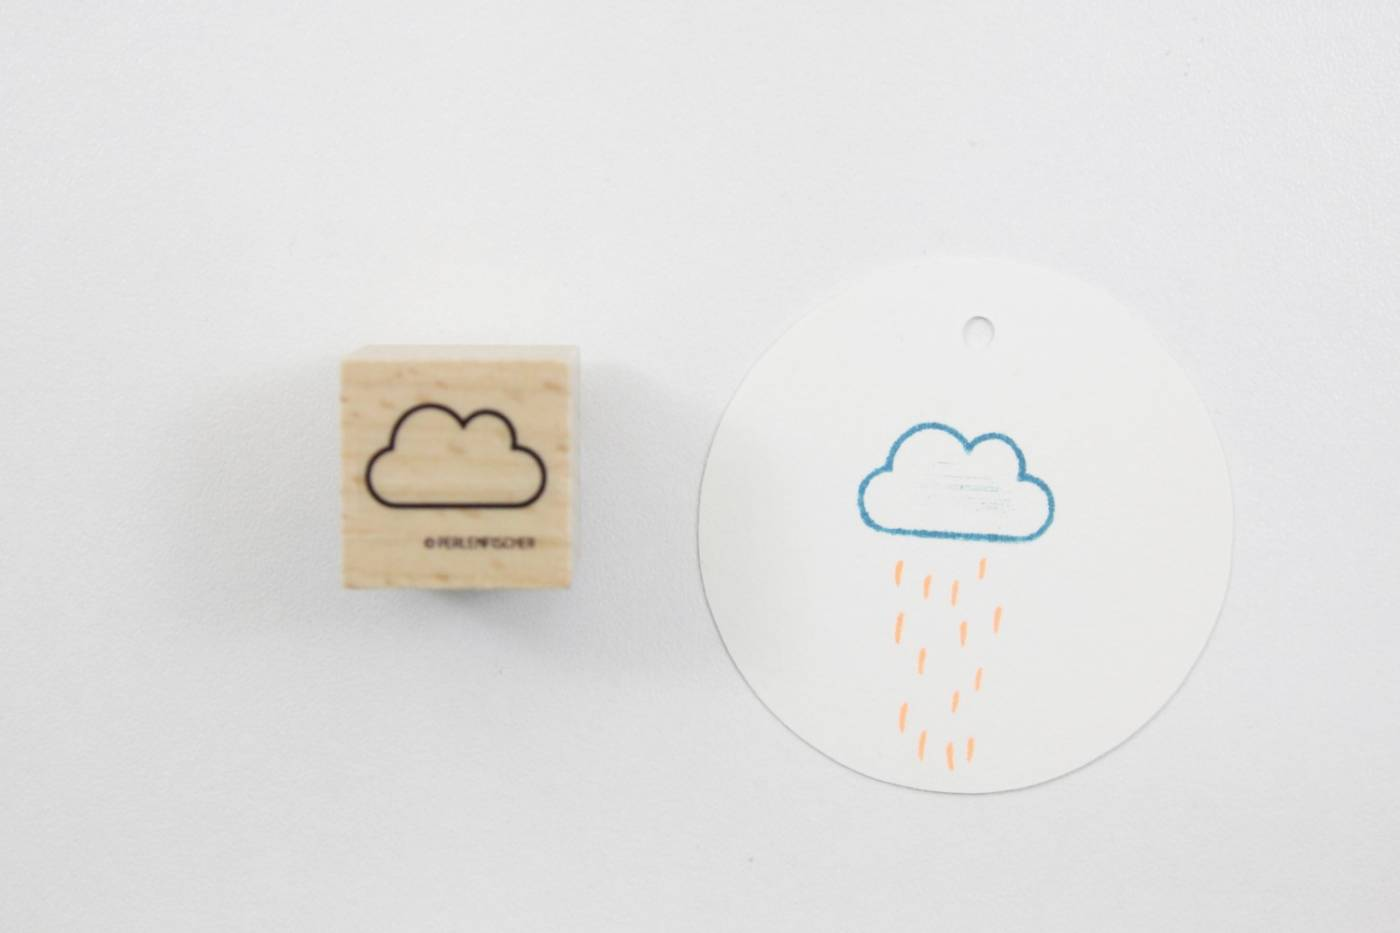 WIT-houten stempel-wolk-cloud-outline-pe